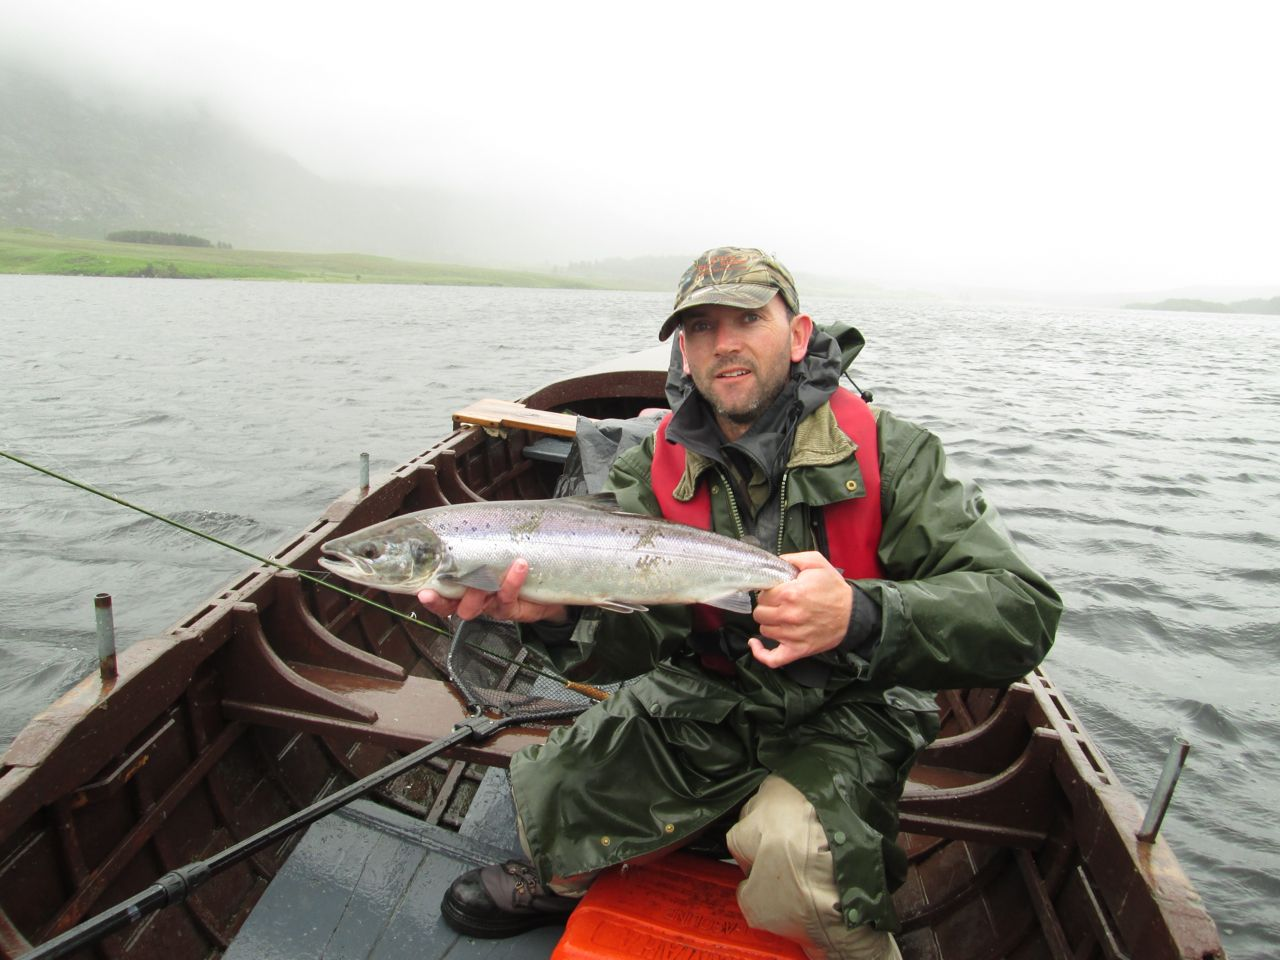 A stunning fresh grilse for me!